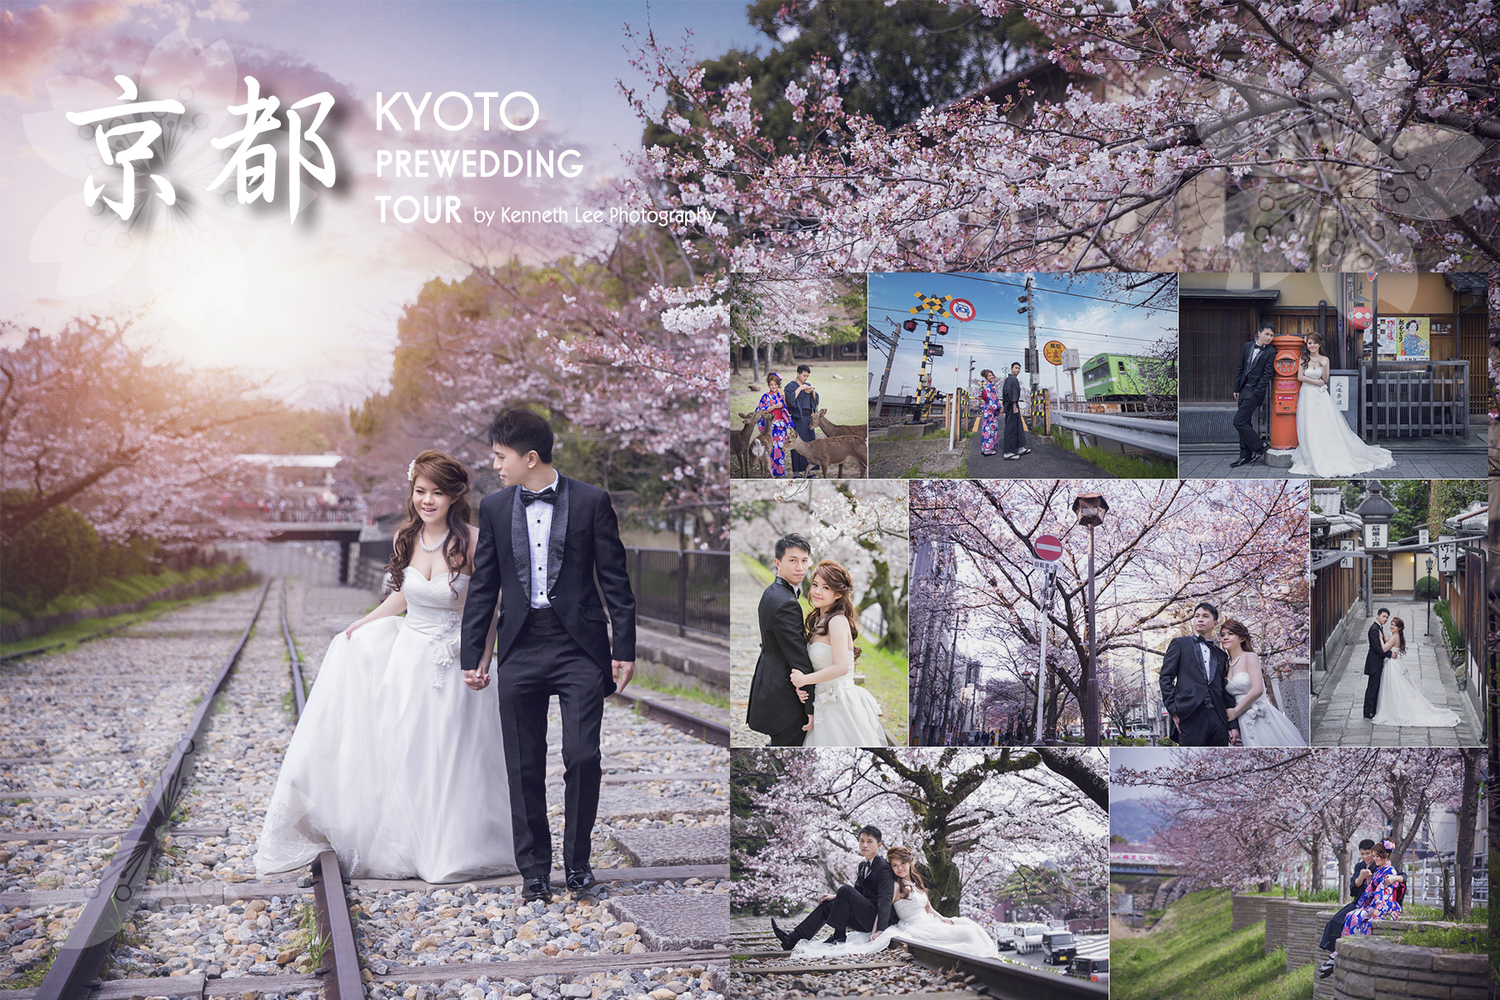 Kyoto_Prewedding_Engagement_Wedding_Photo.jpg